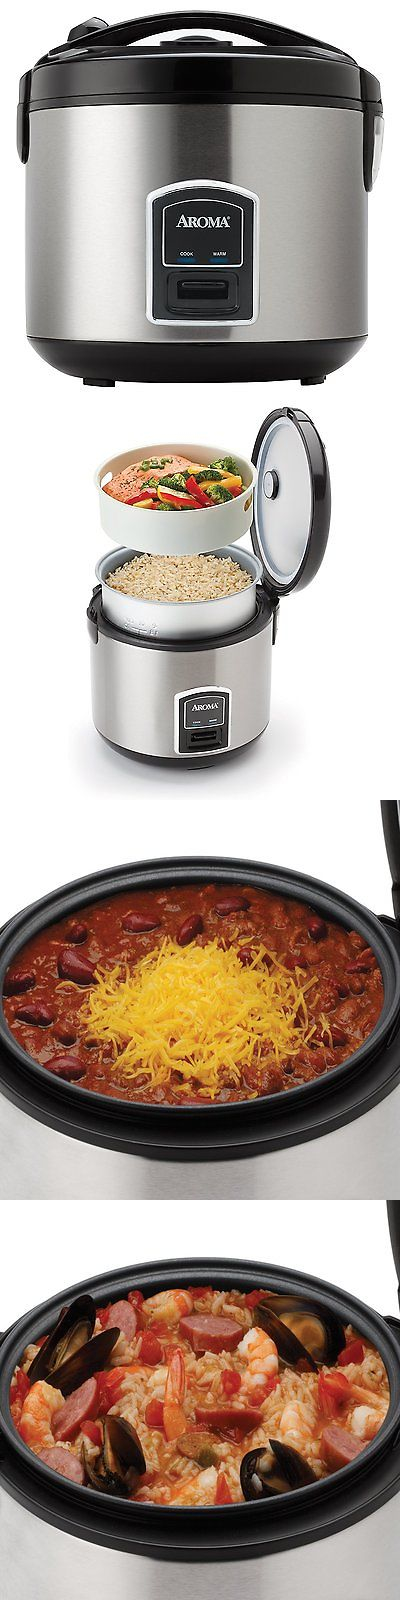 small kitchen appliances  aroma 20 cup electric rice cooker and food steamer stainless steel small kitchen appliances  aroma 20 cup electric rice cooker and      rh   pinterest com